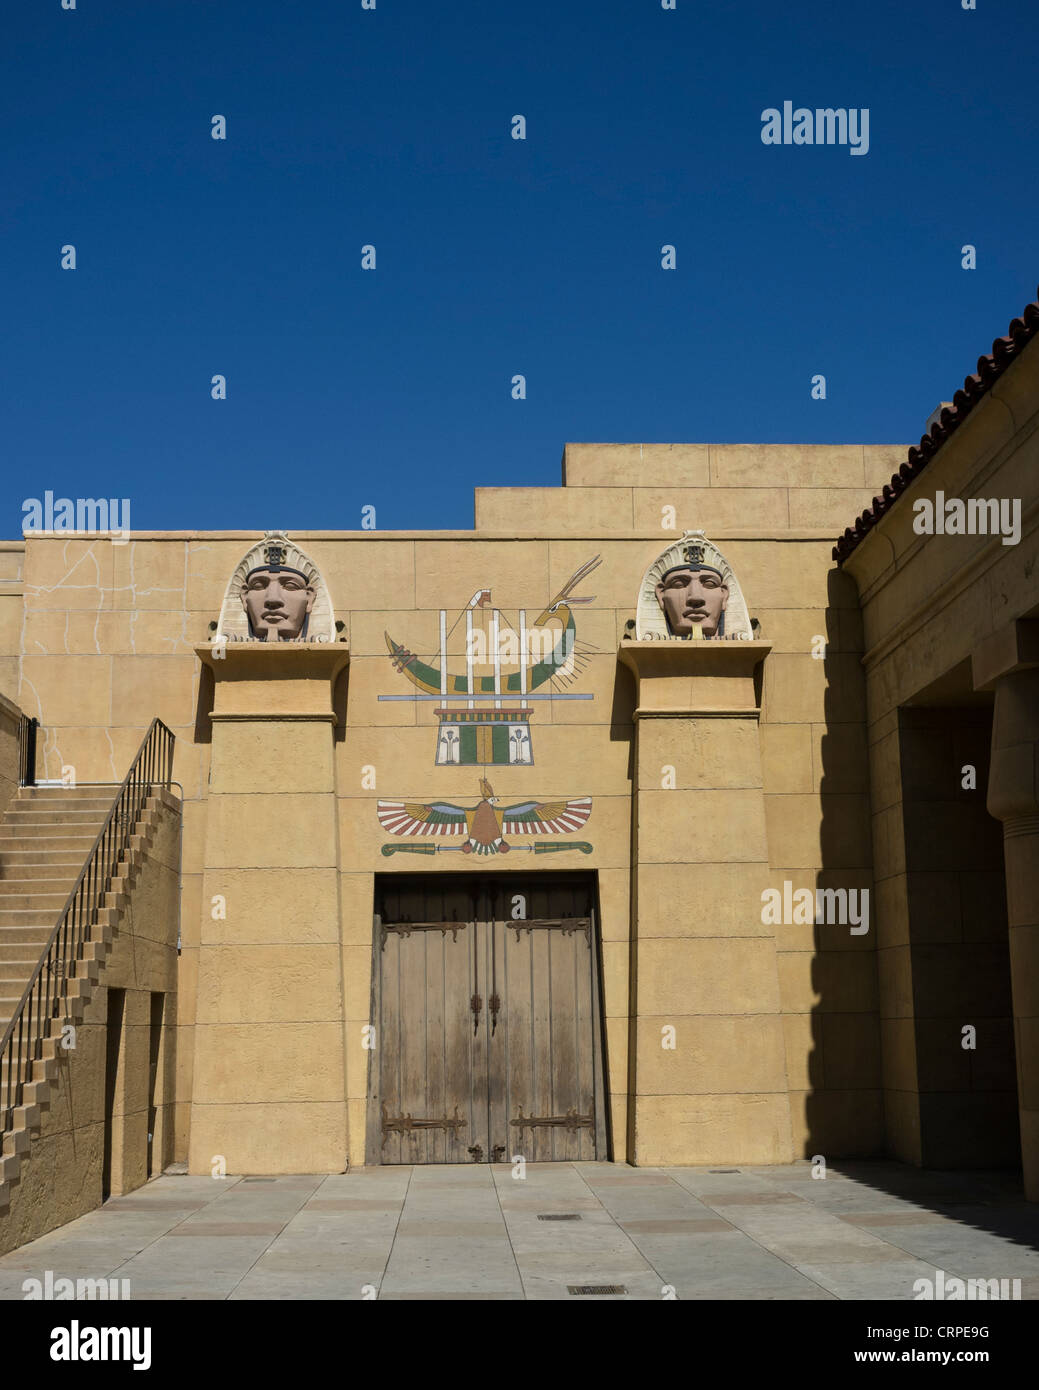 grauman's egyptian theater in Hollywood - Stock Image